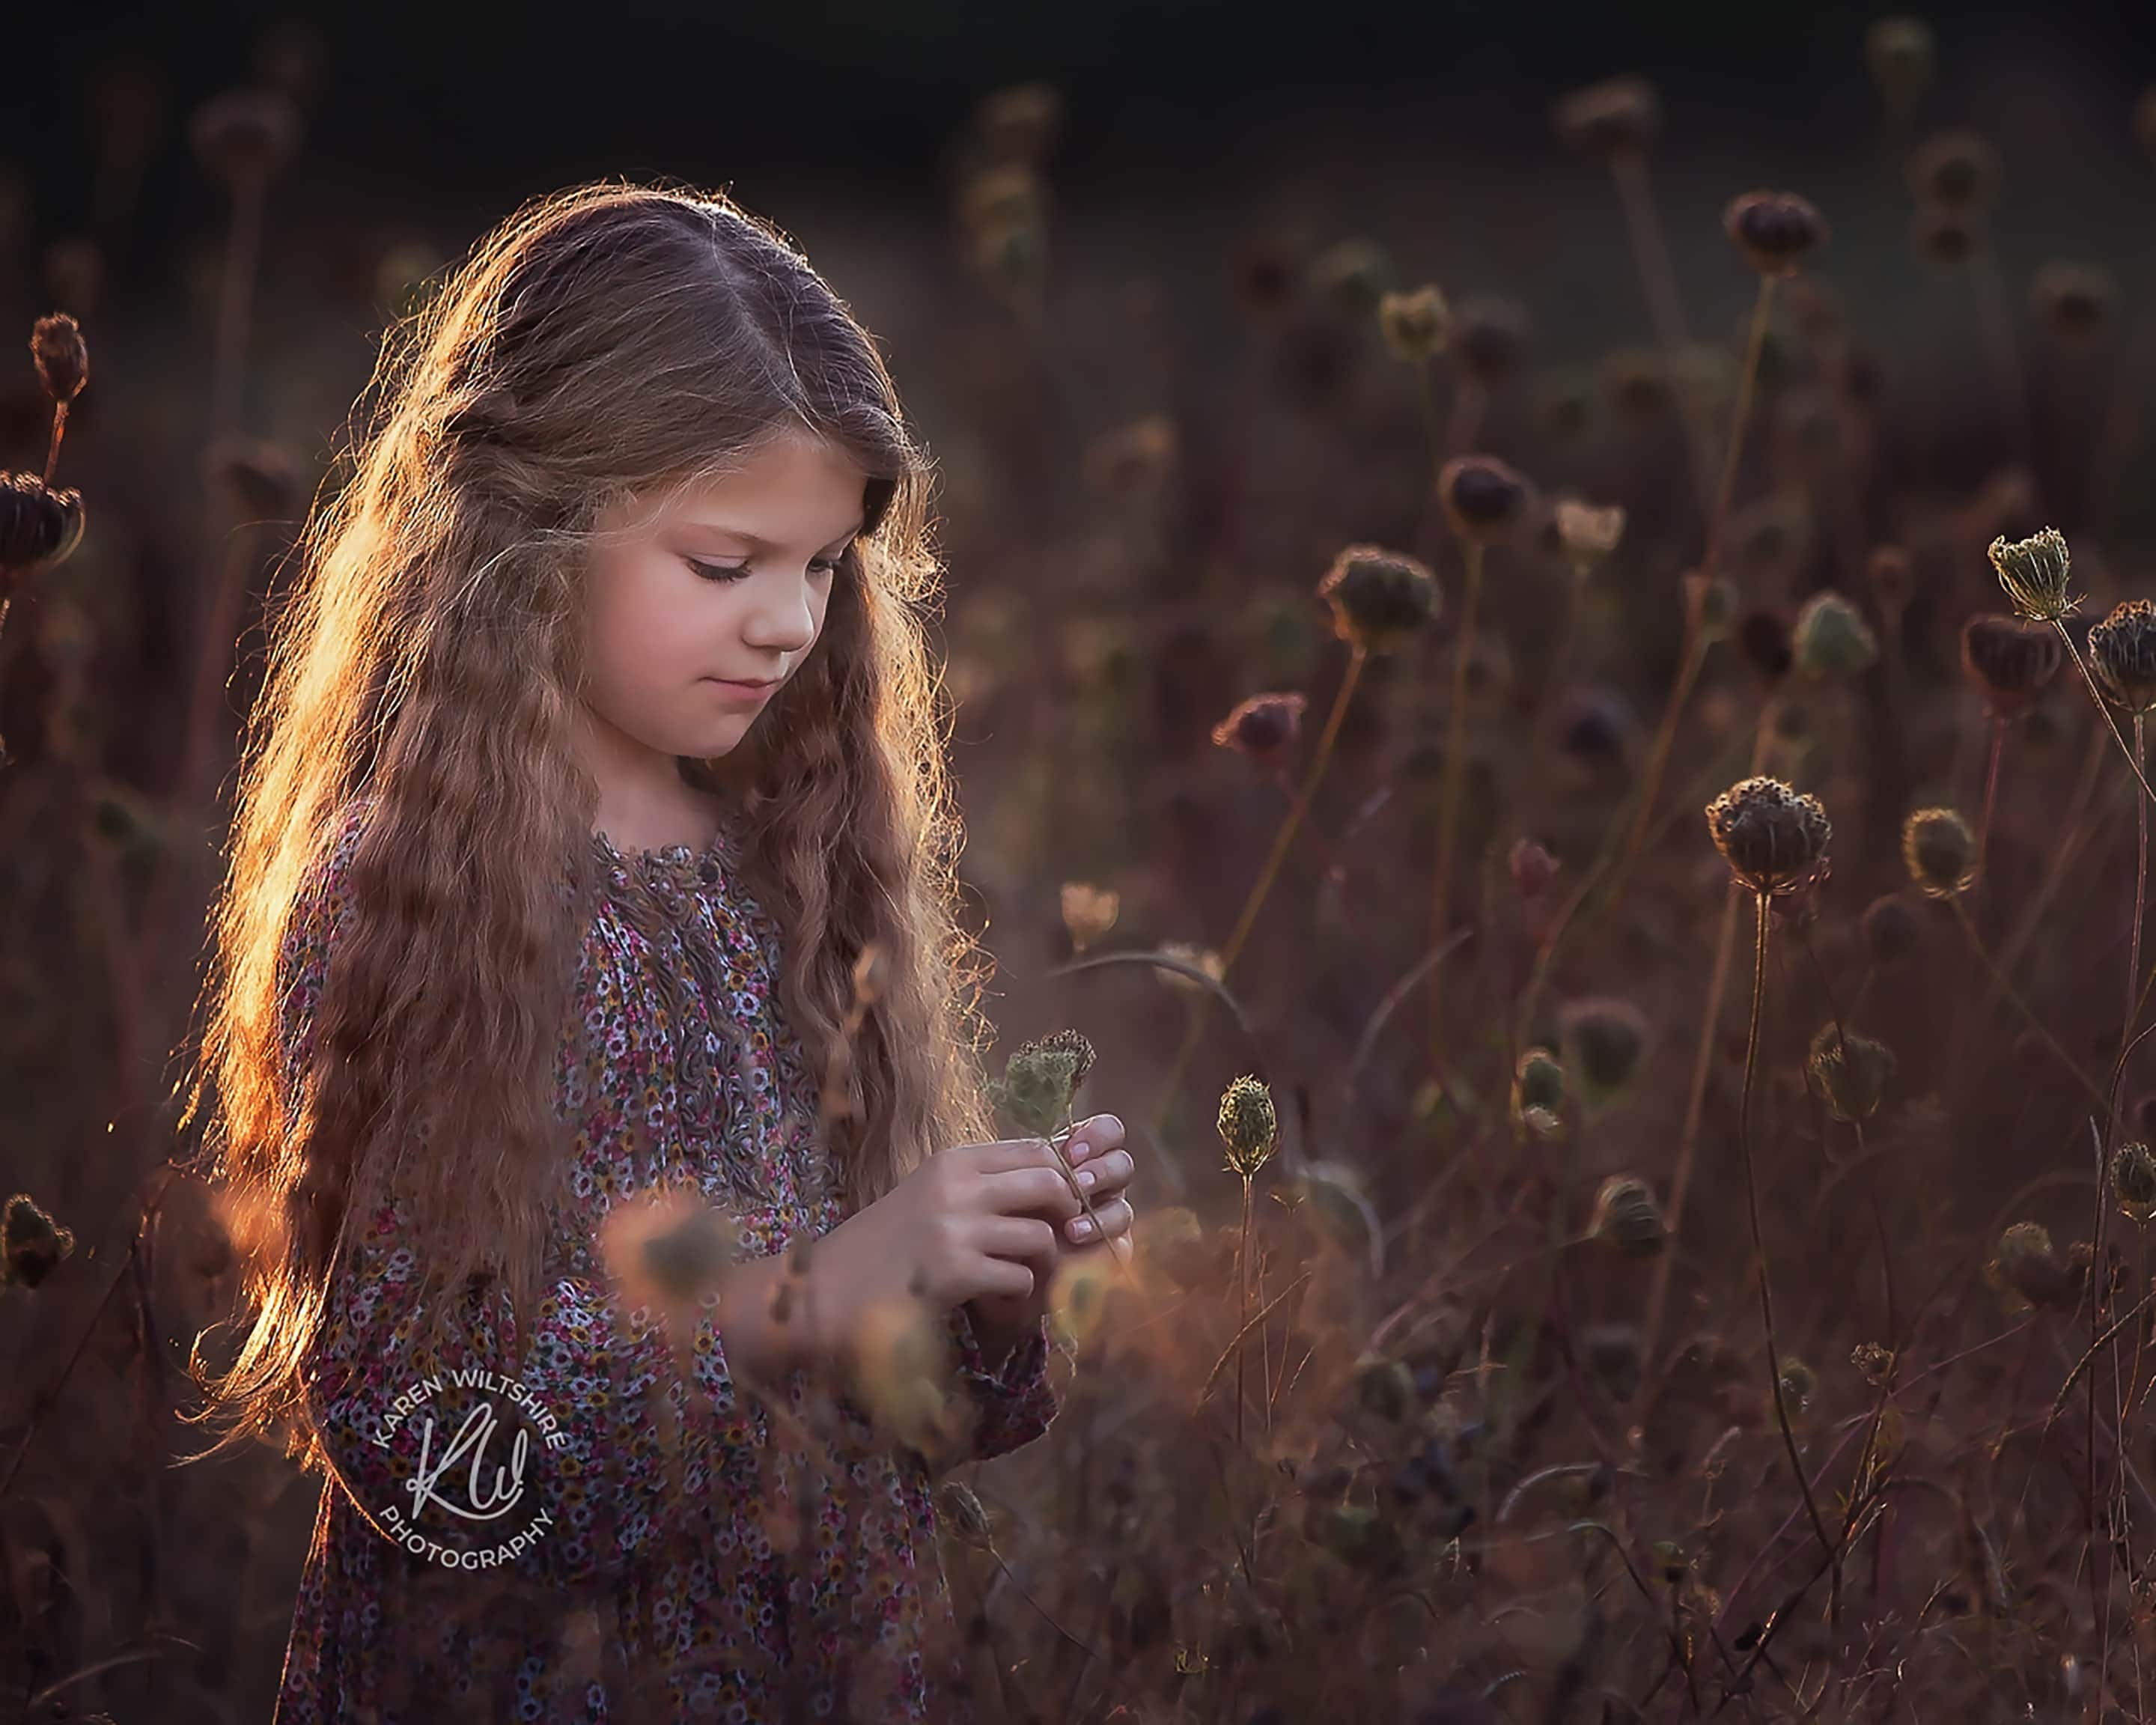 Long haired girl in field of seed heads